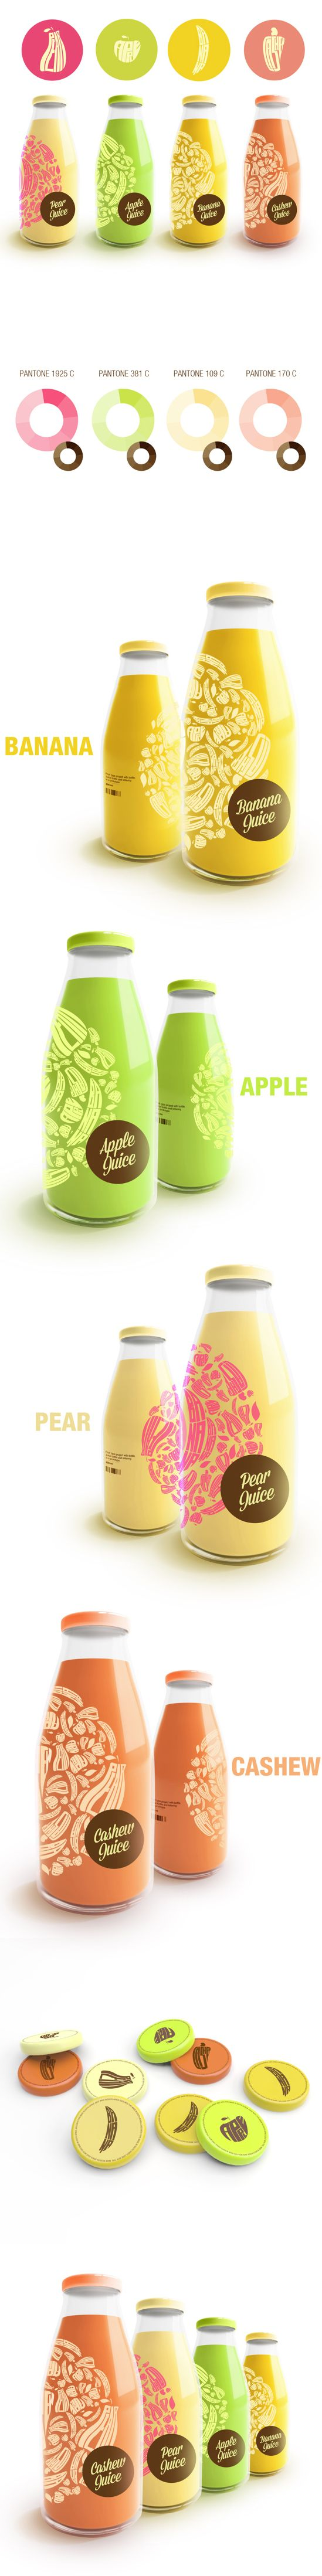 Packaging Project by Renan Vizzotto | Rich colors, perfect icons